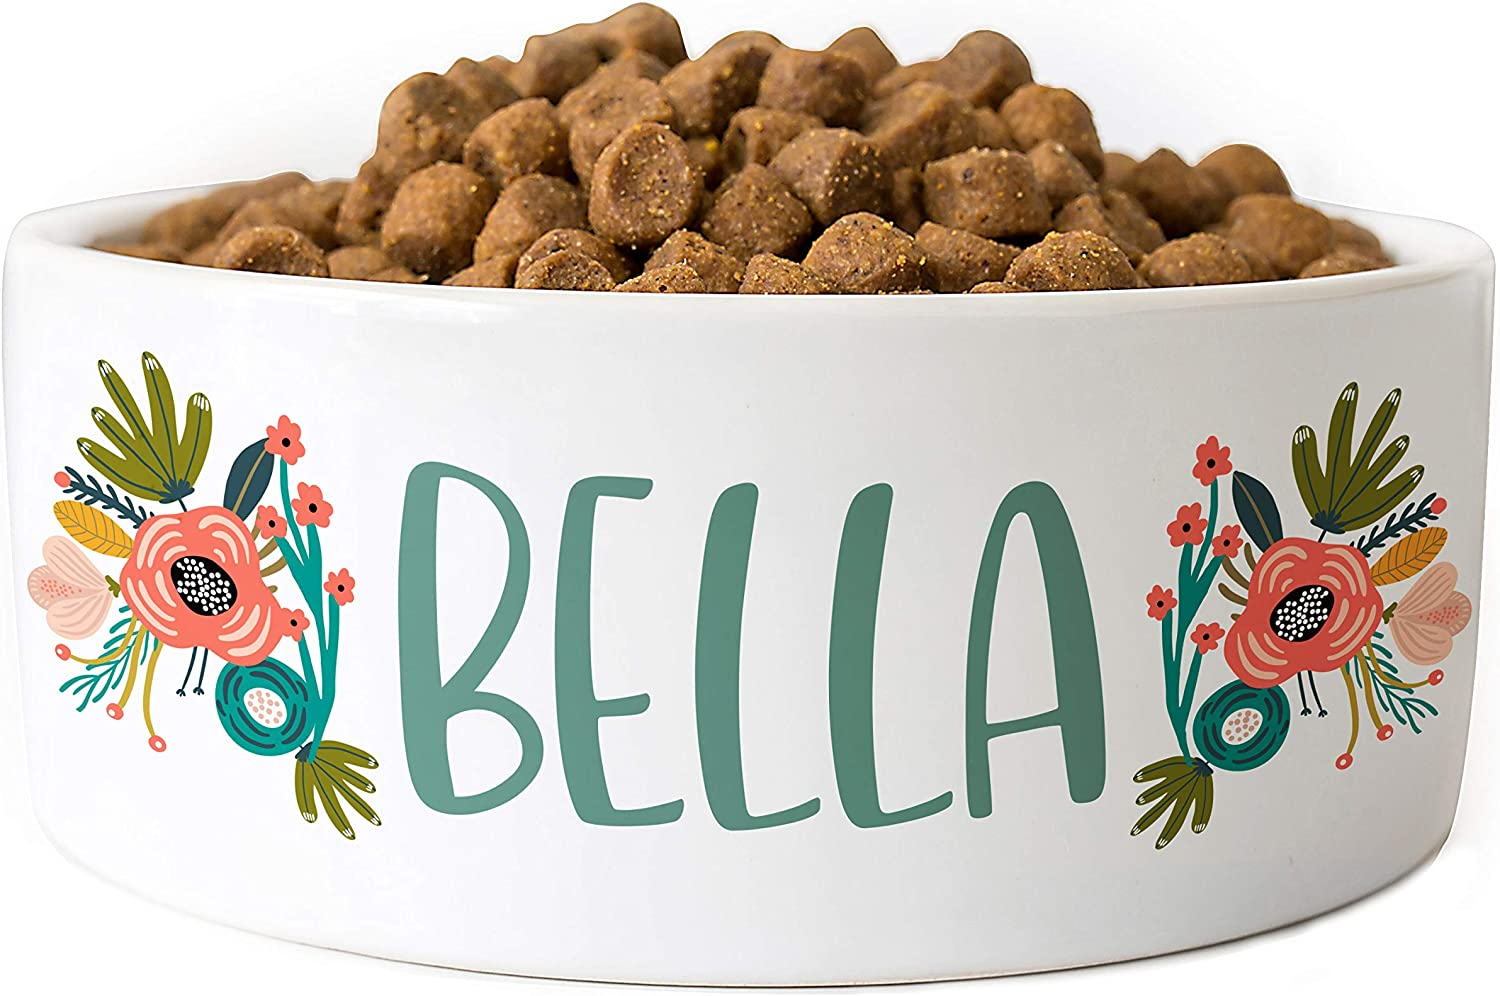 United Craft Supplies Personalized Pet Bowl